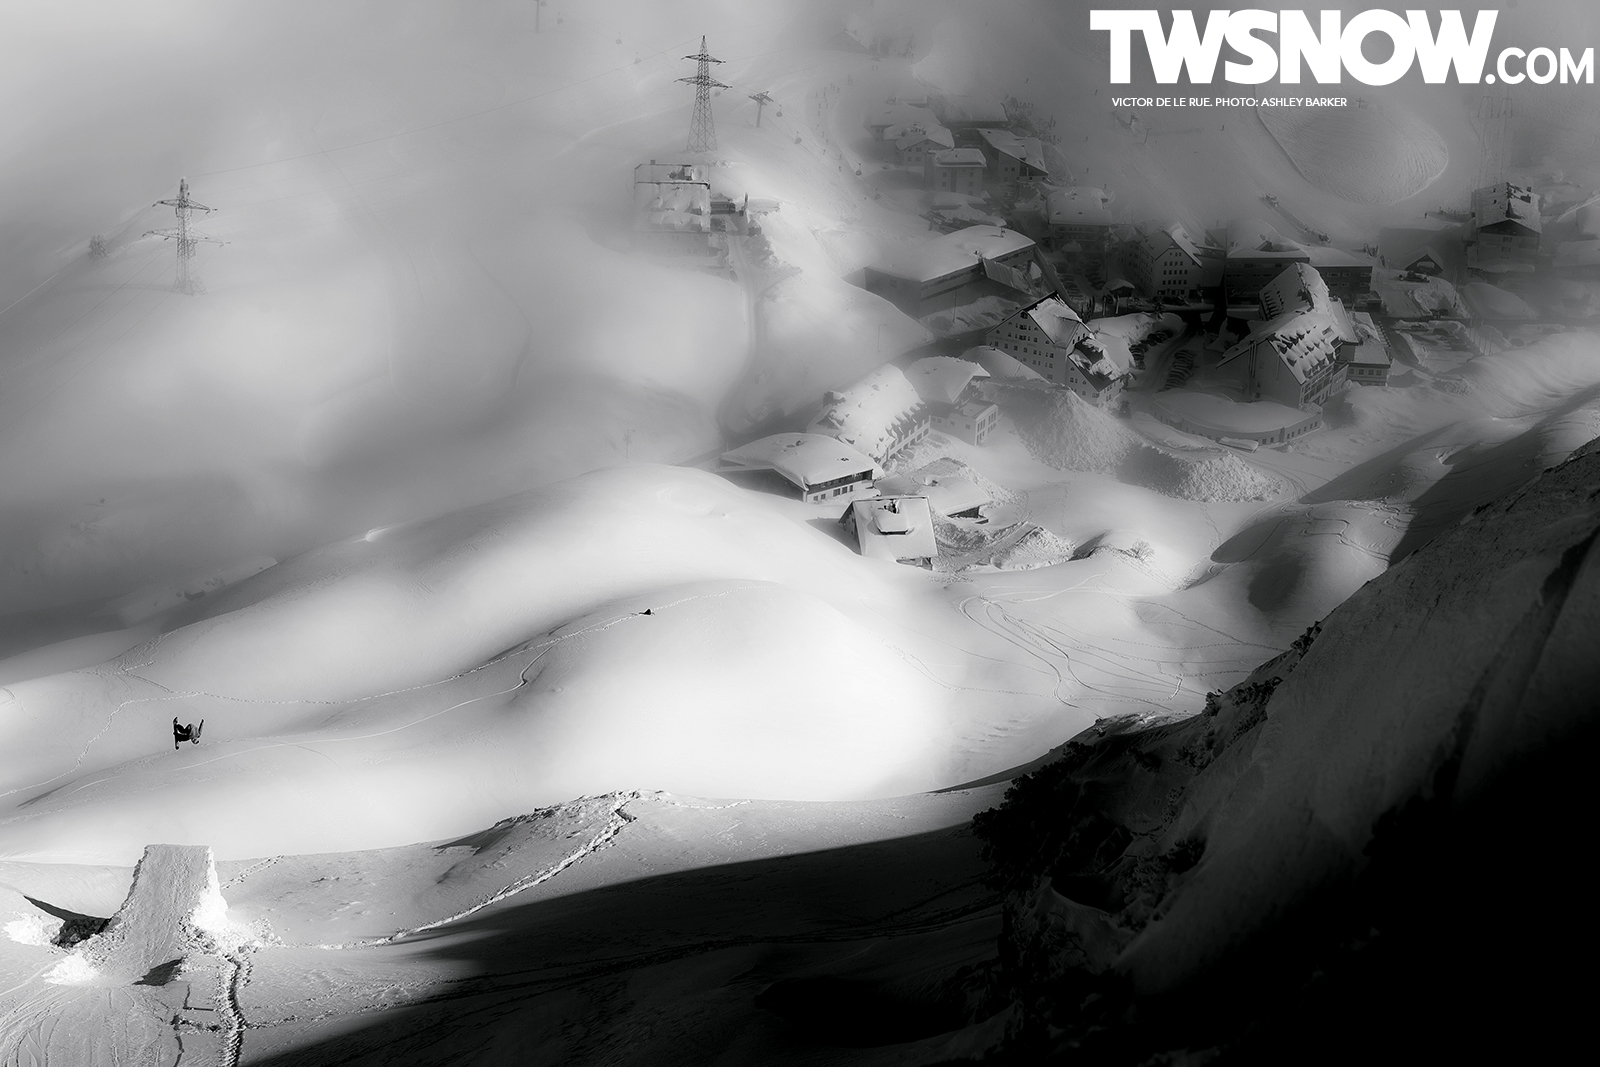 Wallpaper Wednesday Life in Black and White TransWorld SNOWboarding 1600x1067